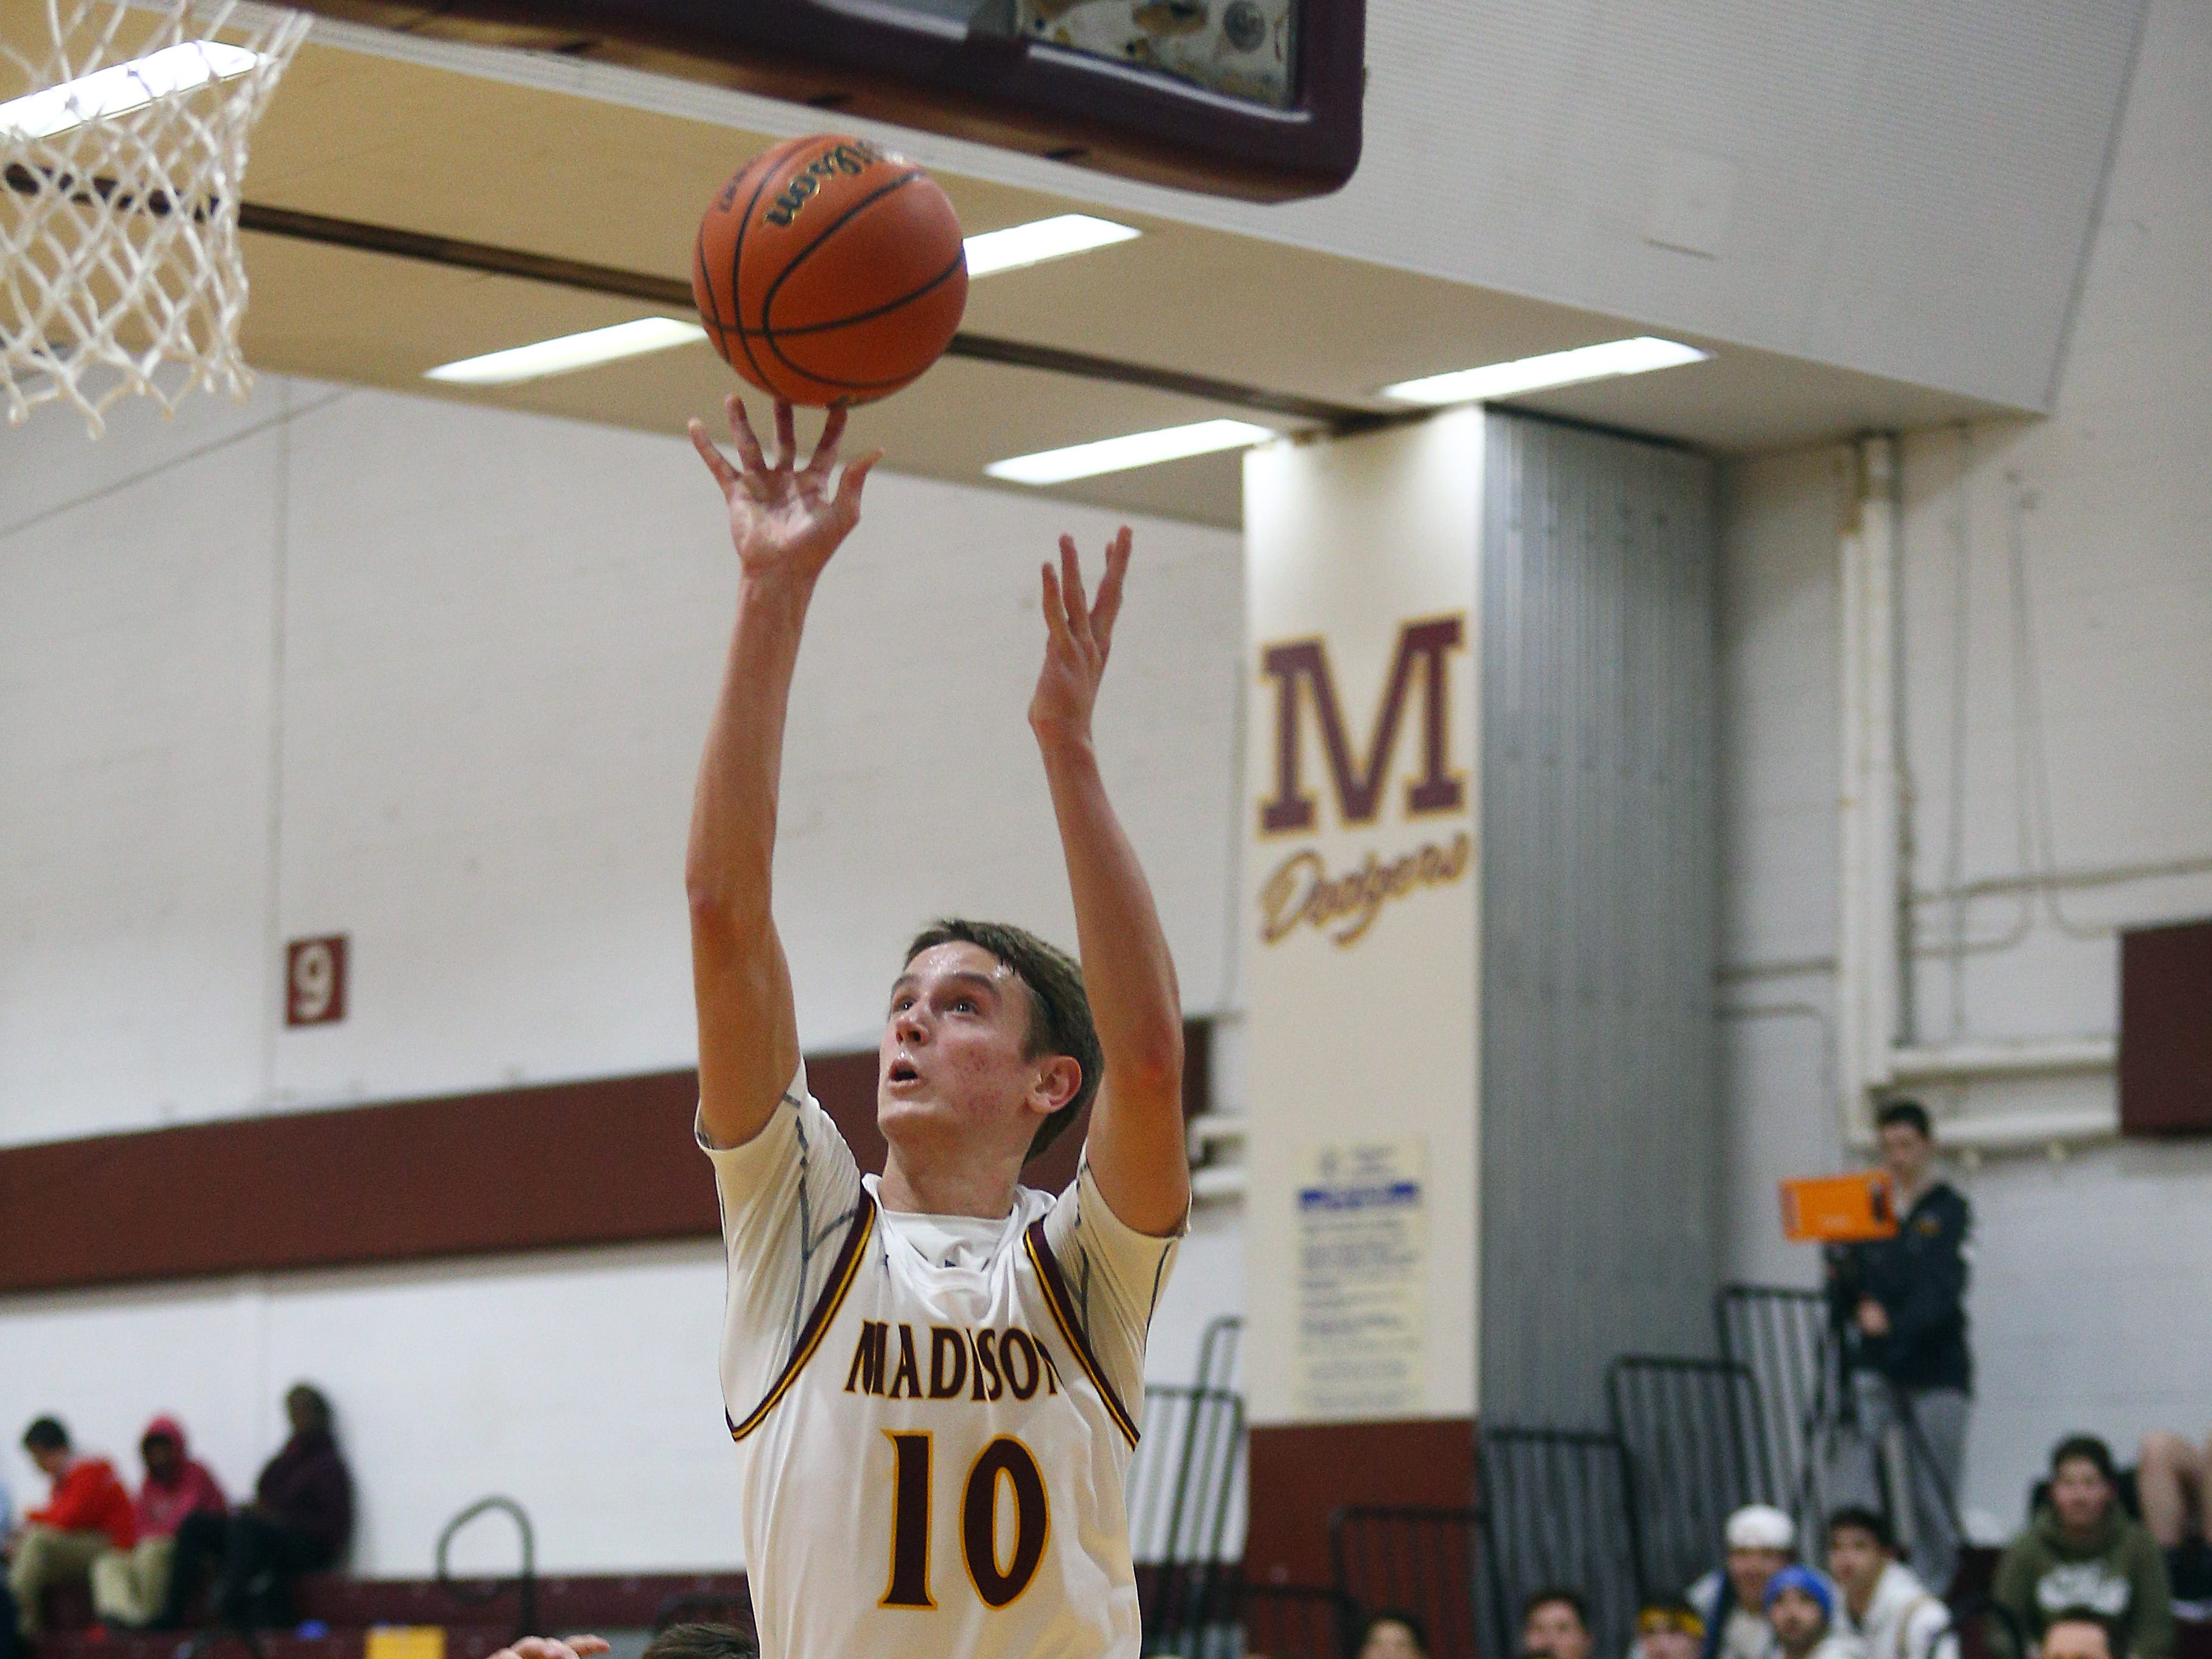 Madison's Andy Christos goes to the hoop vs Parsippany during their boys basketball game. Senior Andy Christos had 22 point surpassing his 1,000th career point. December 18, 2018, Madison, NJ